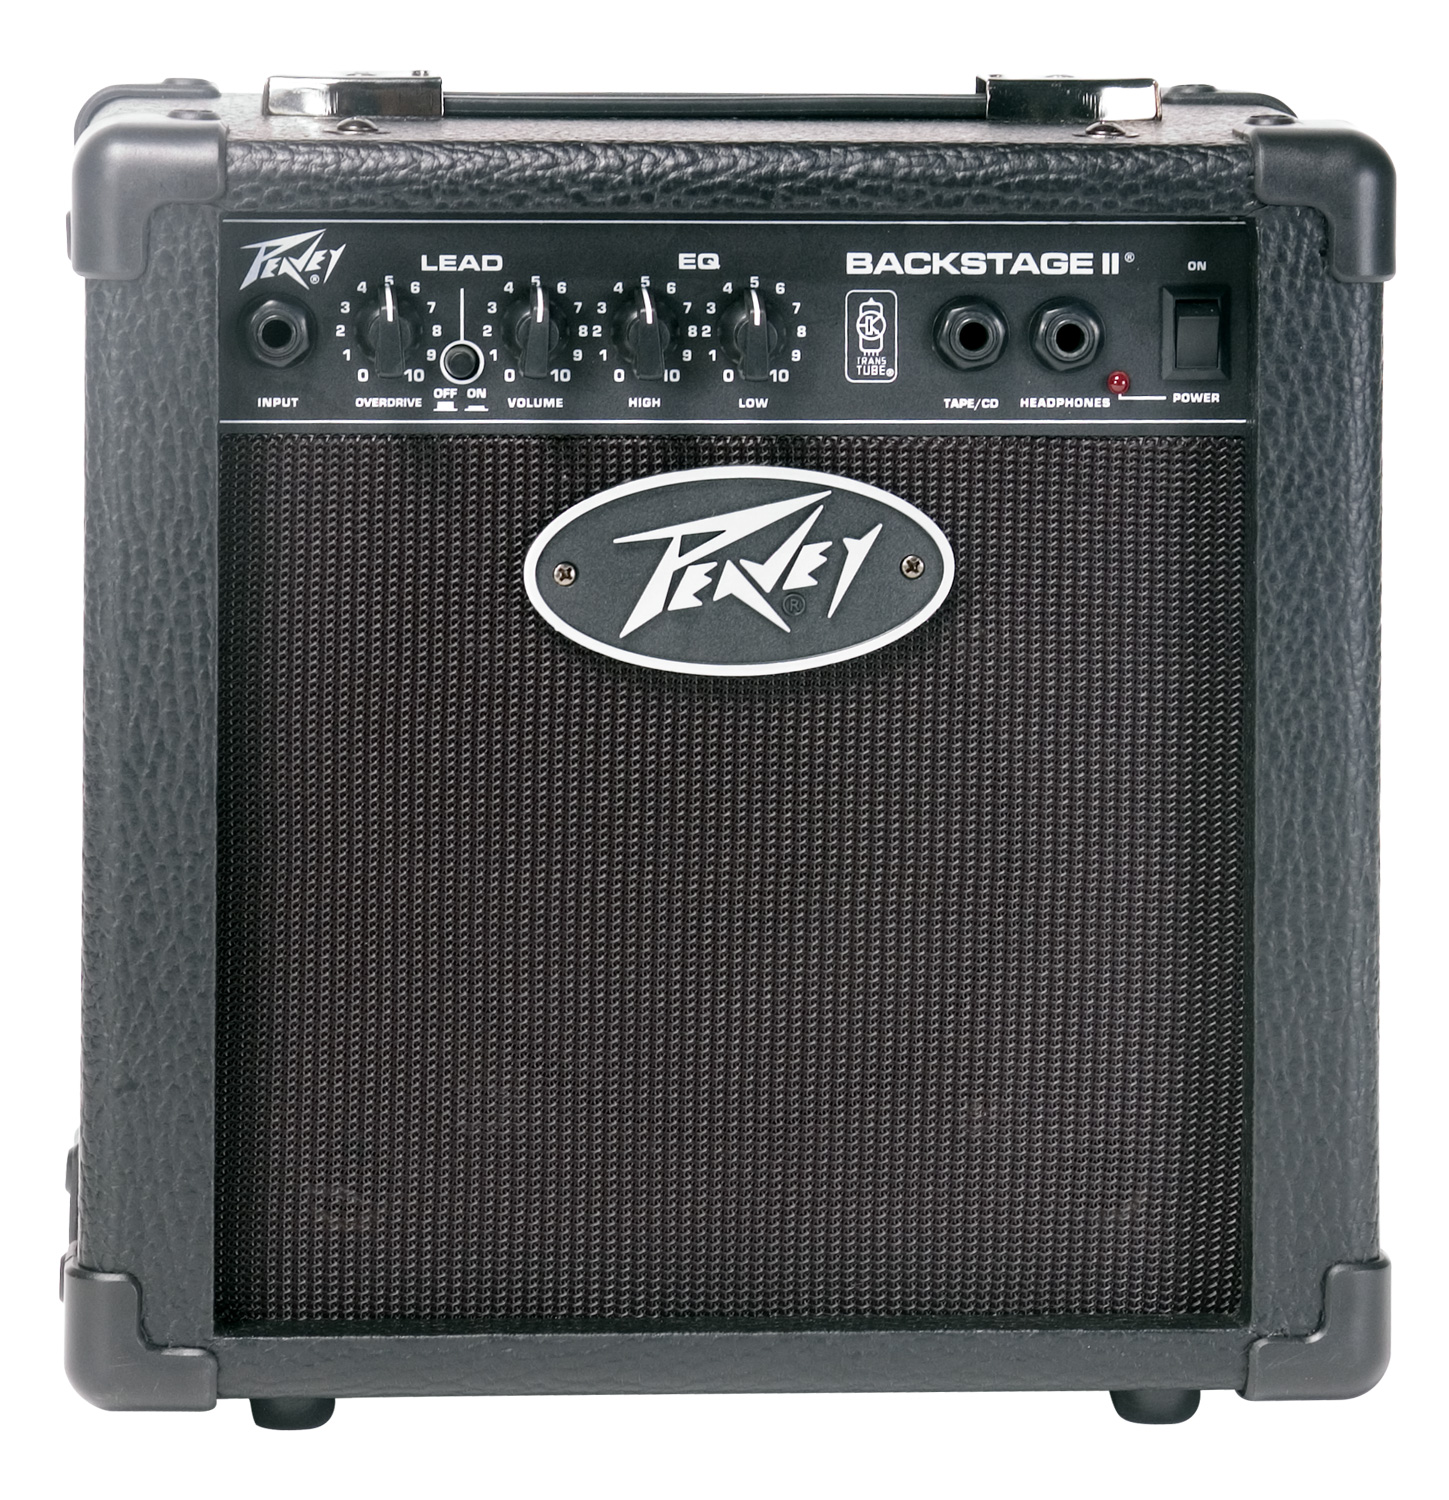 Peavey Backstage?? Guitar Amp